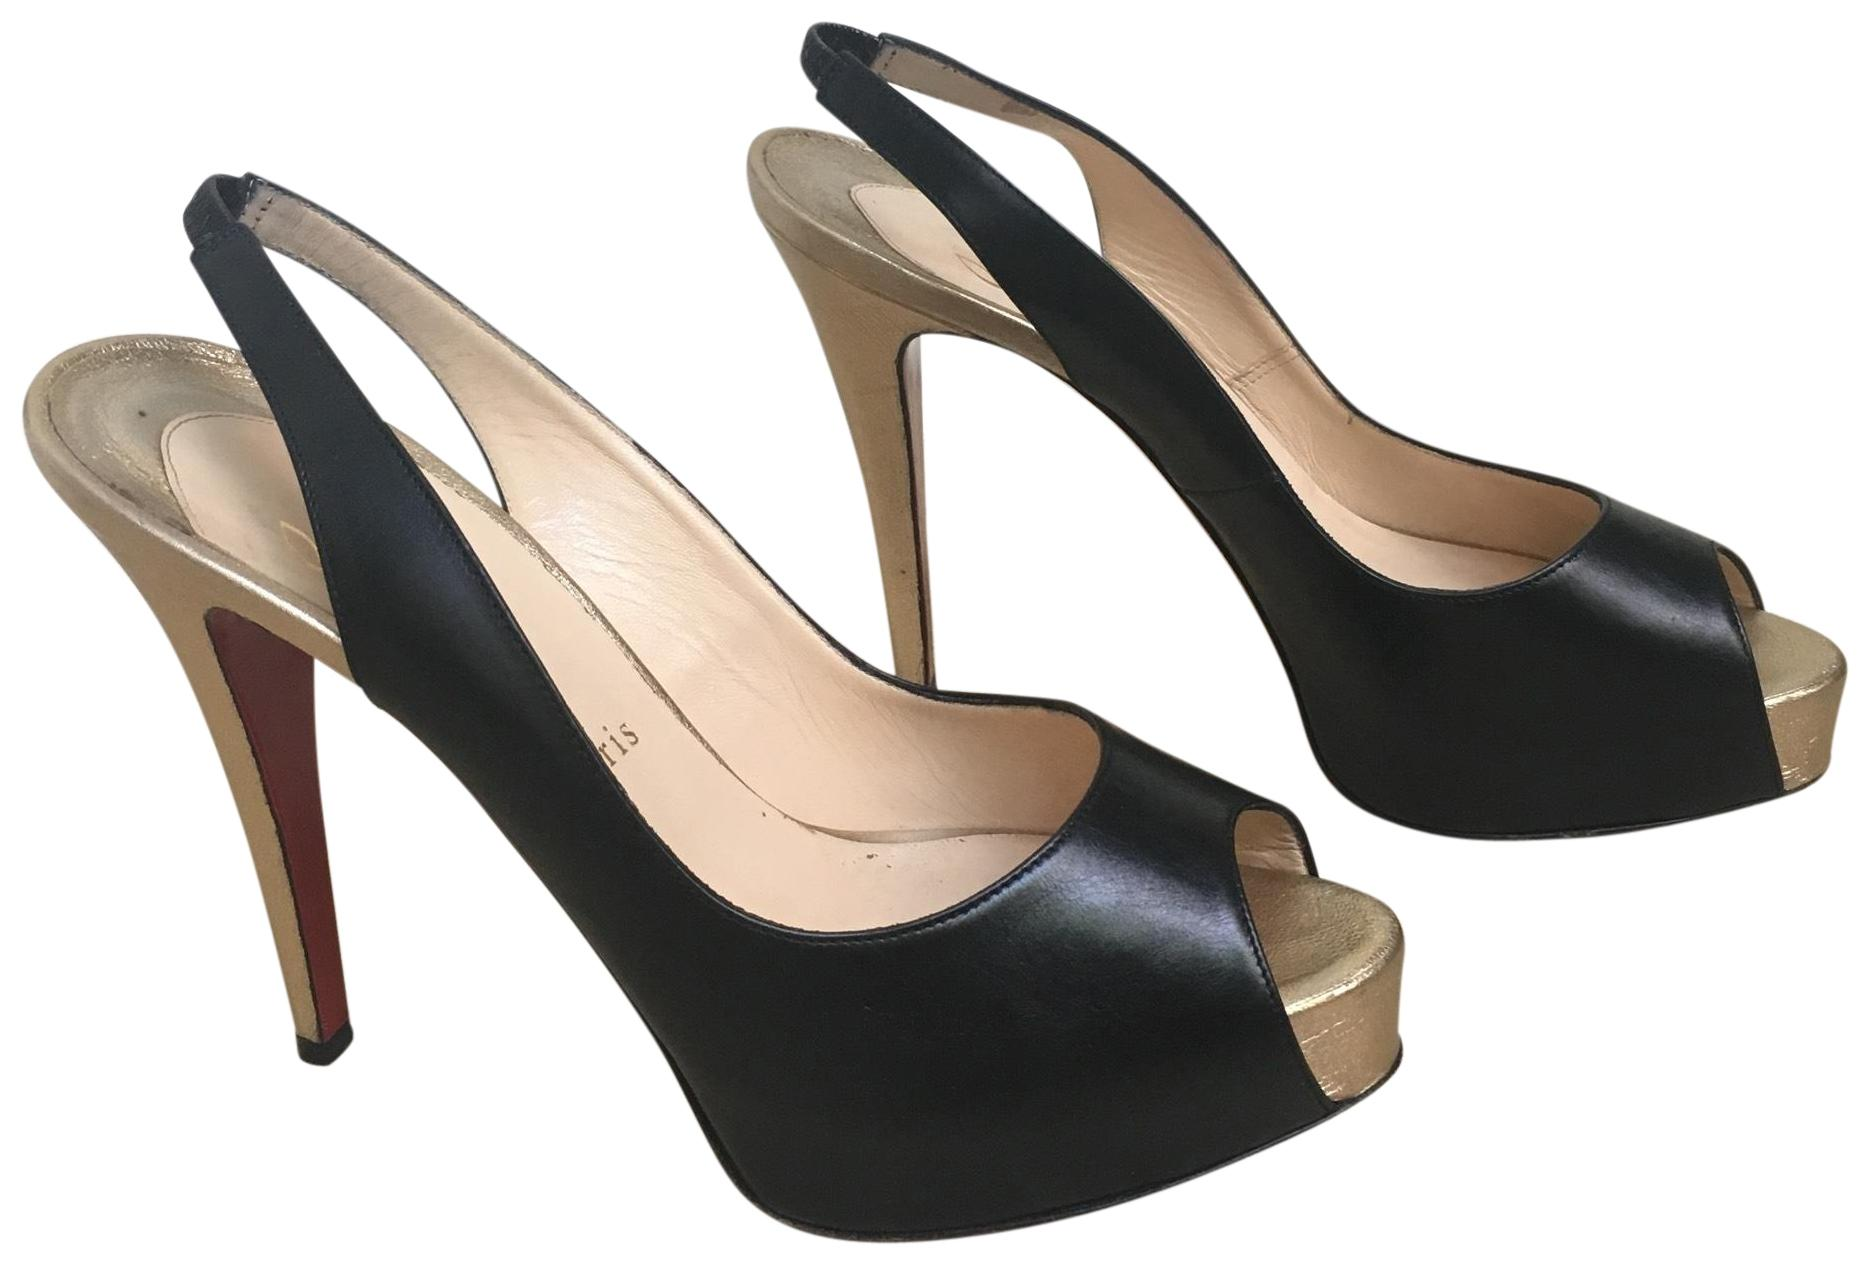 737a3e77465 Christian Louboutin Black and Gold Private Number Number Number Platforms  Size EU 40 (Approx.